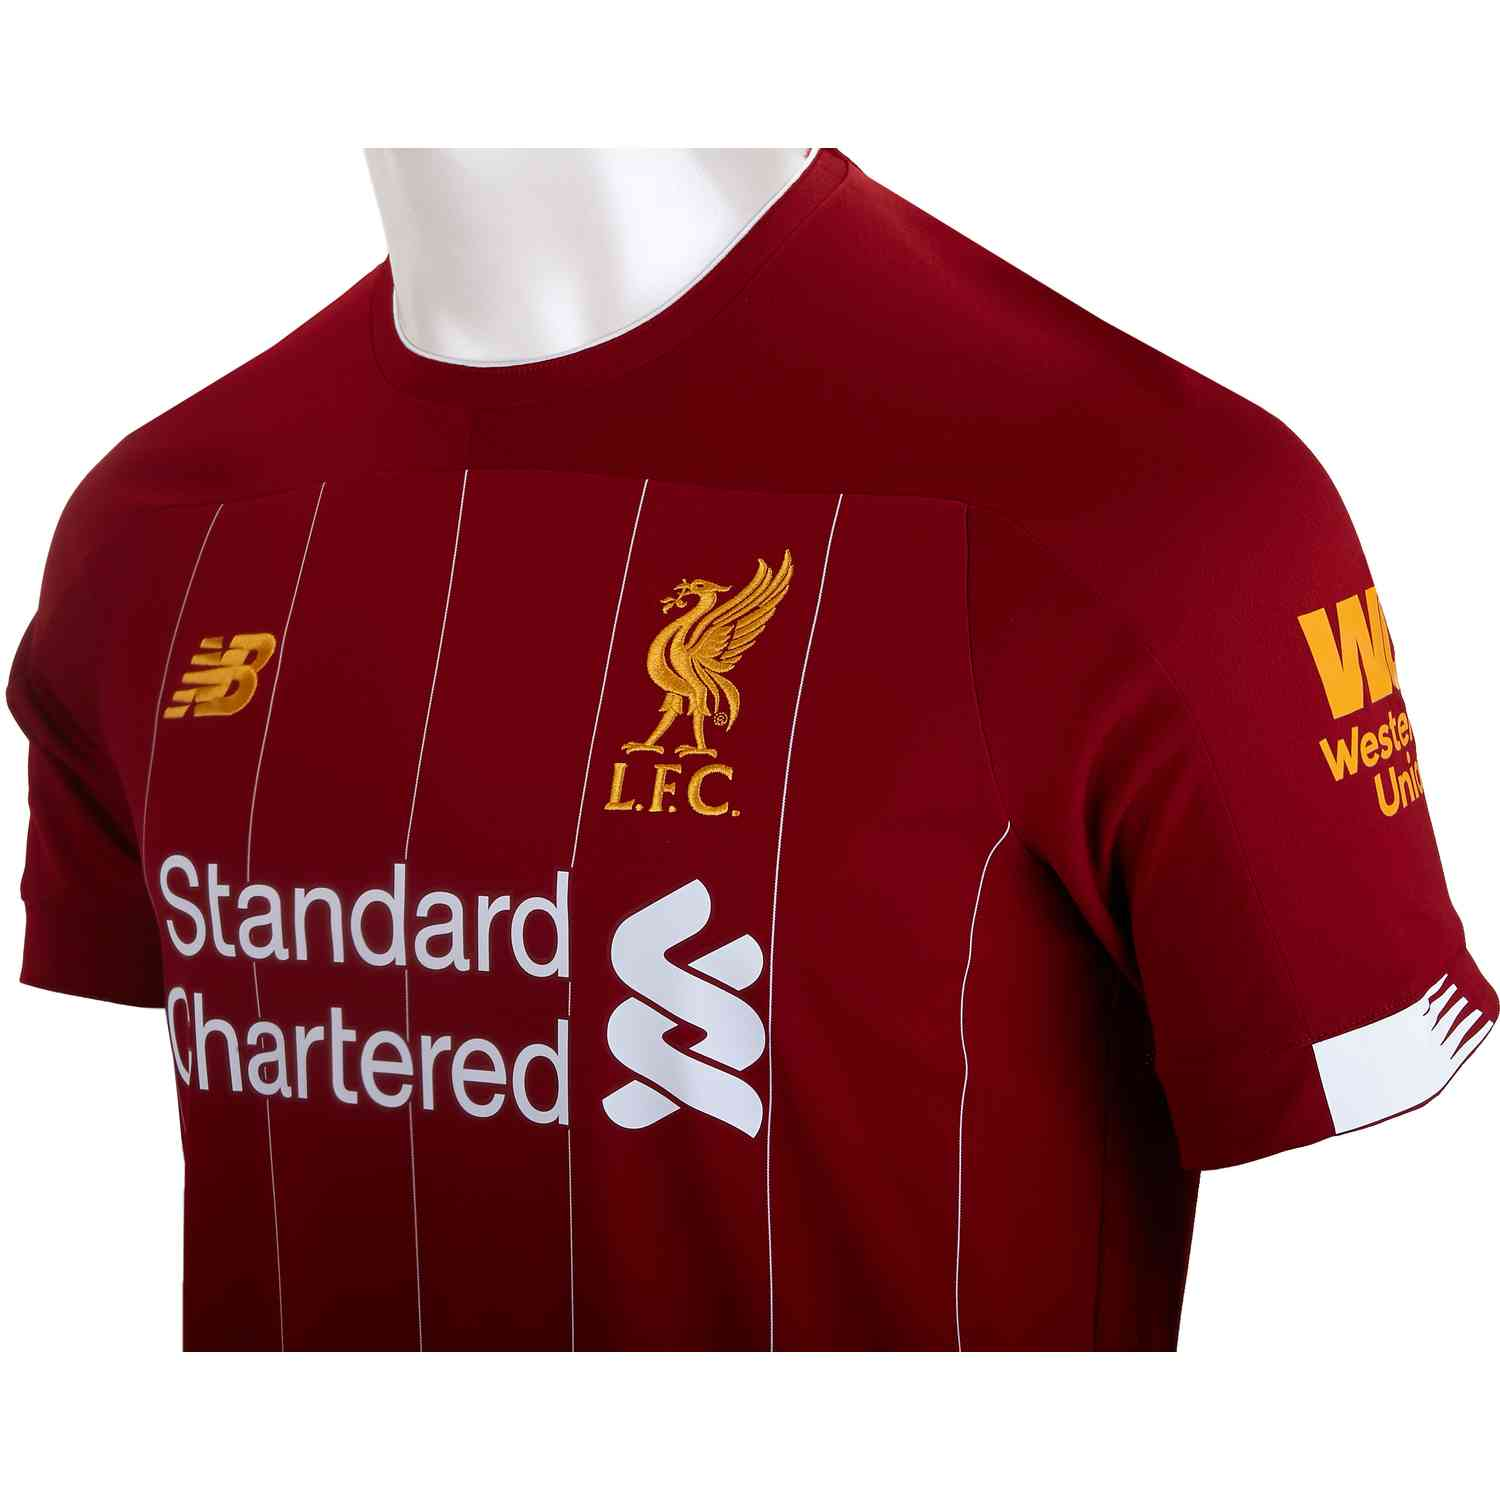 new product a62db 45d32 2019/20 New Balance Mohamed Salah Liverpool Home Jersey ...